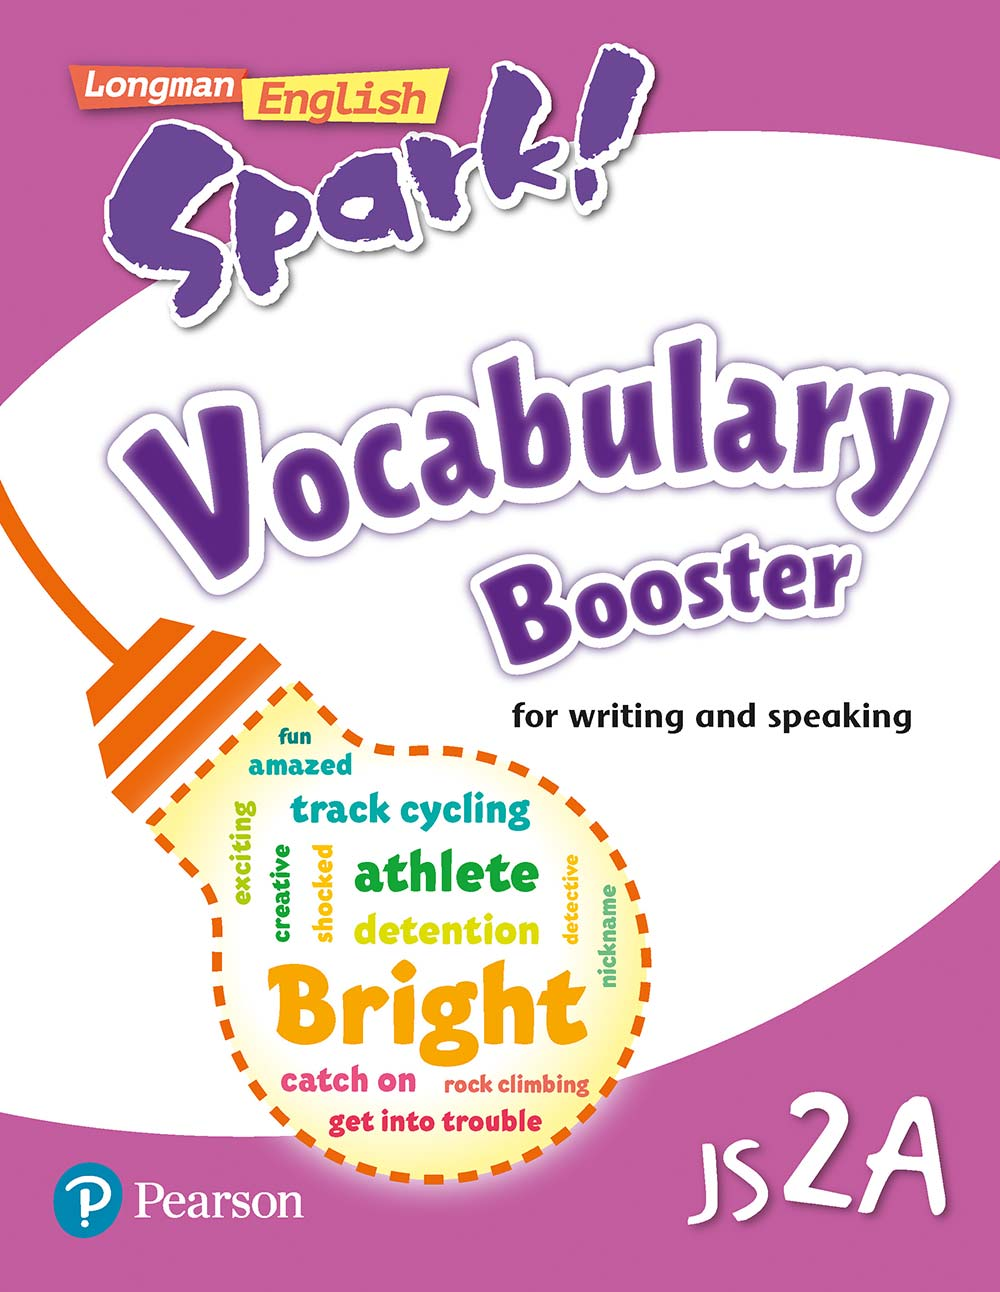 Longman English Spark! JS2A Vocabulary Booster